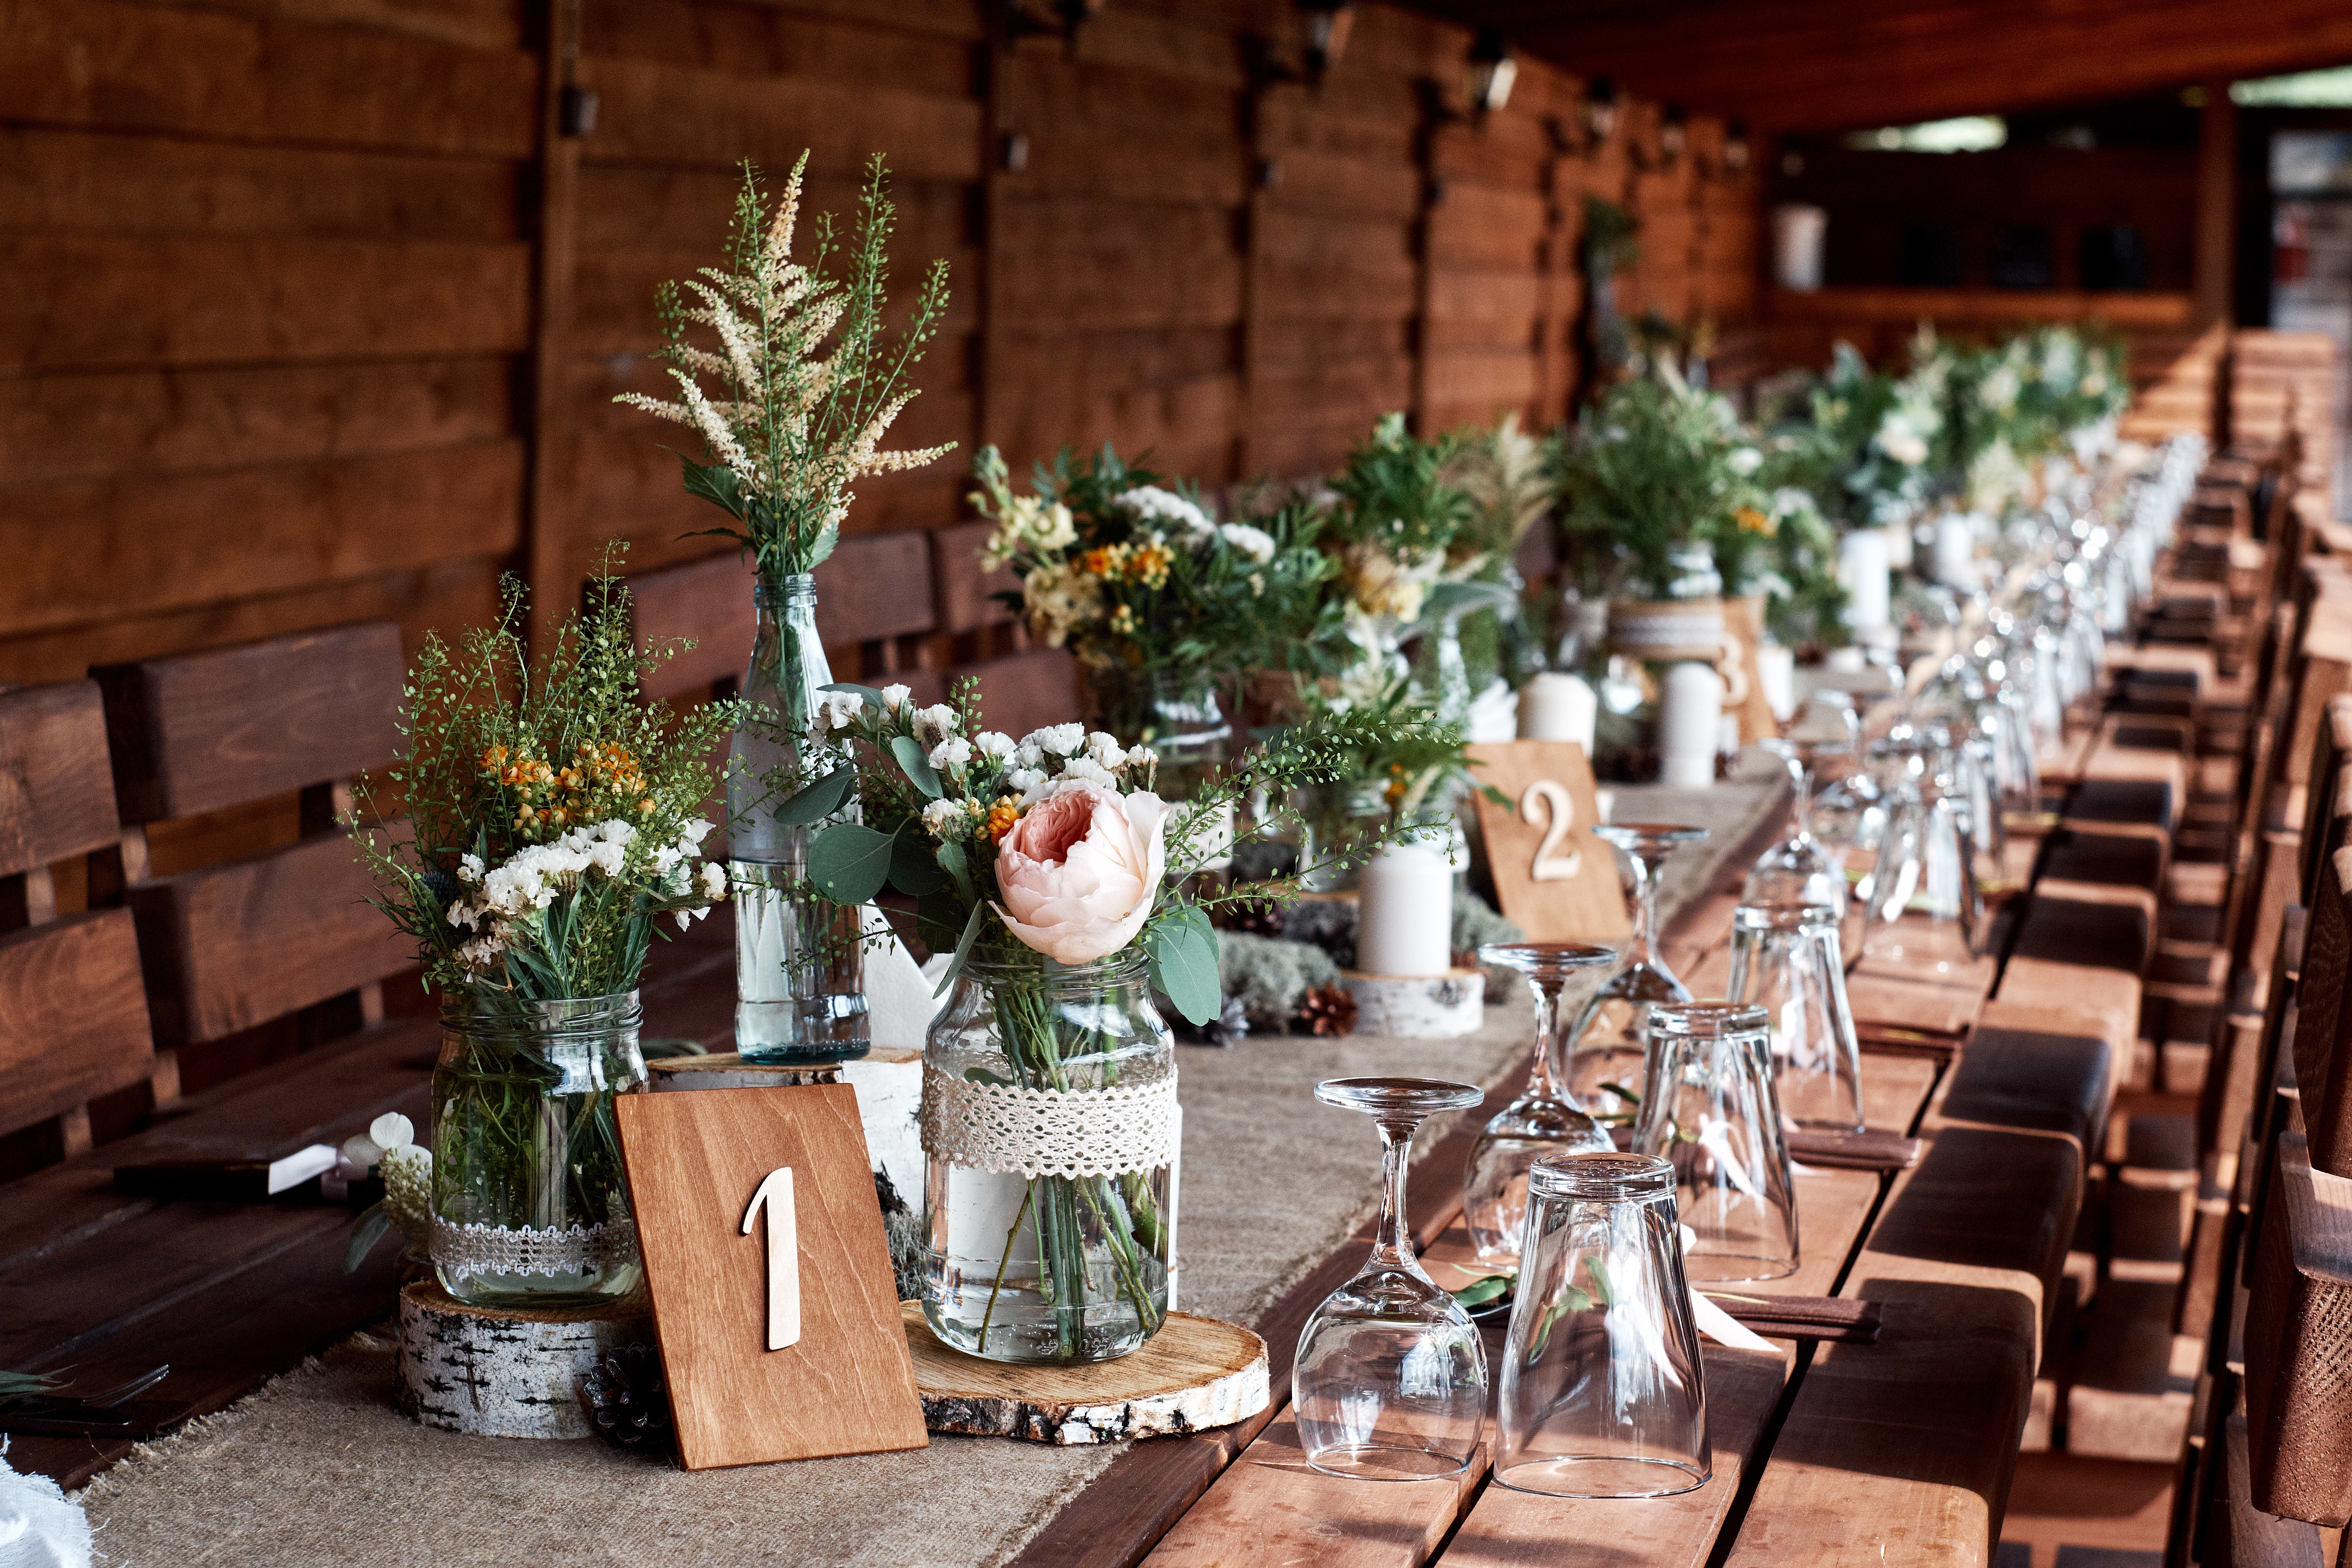 decorated wedding table with lots of small vases and containers of rustic garden flowers